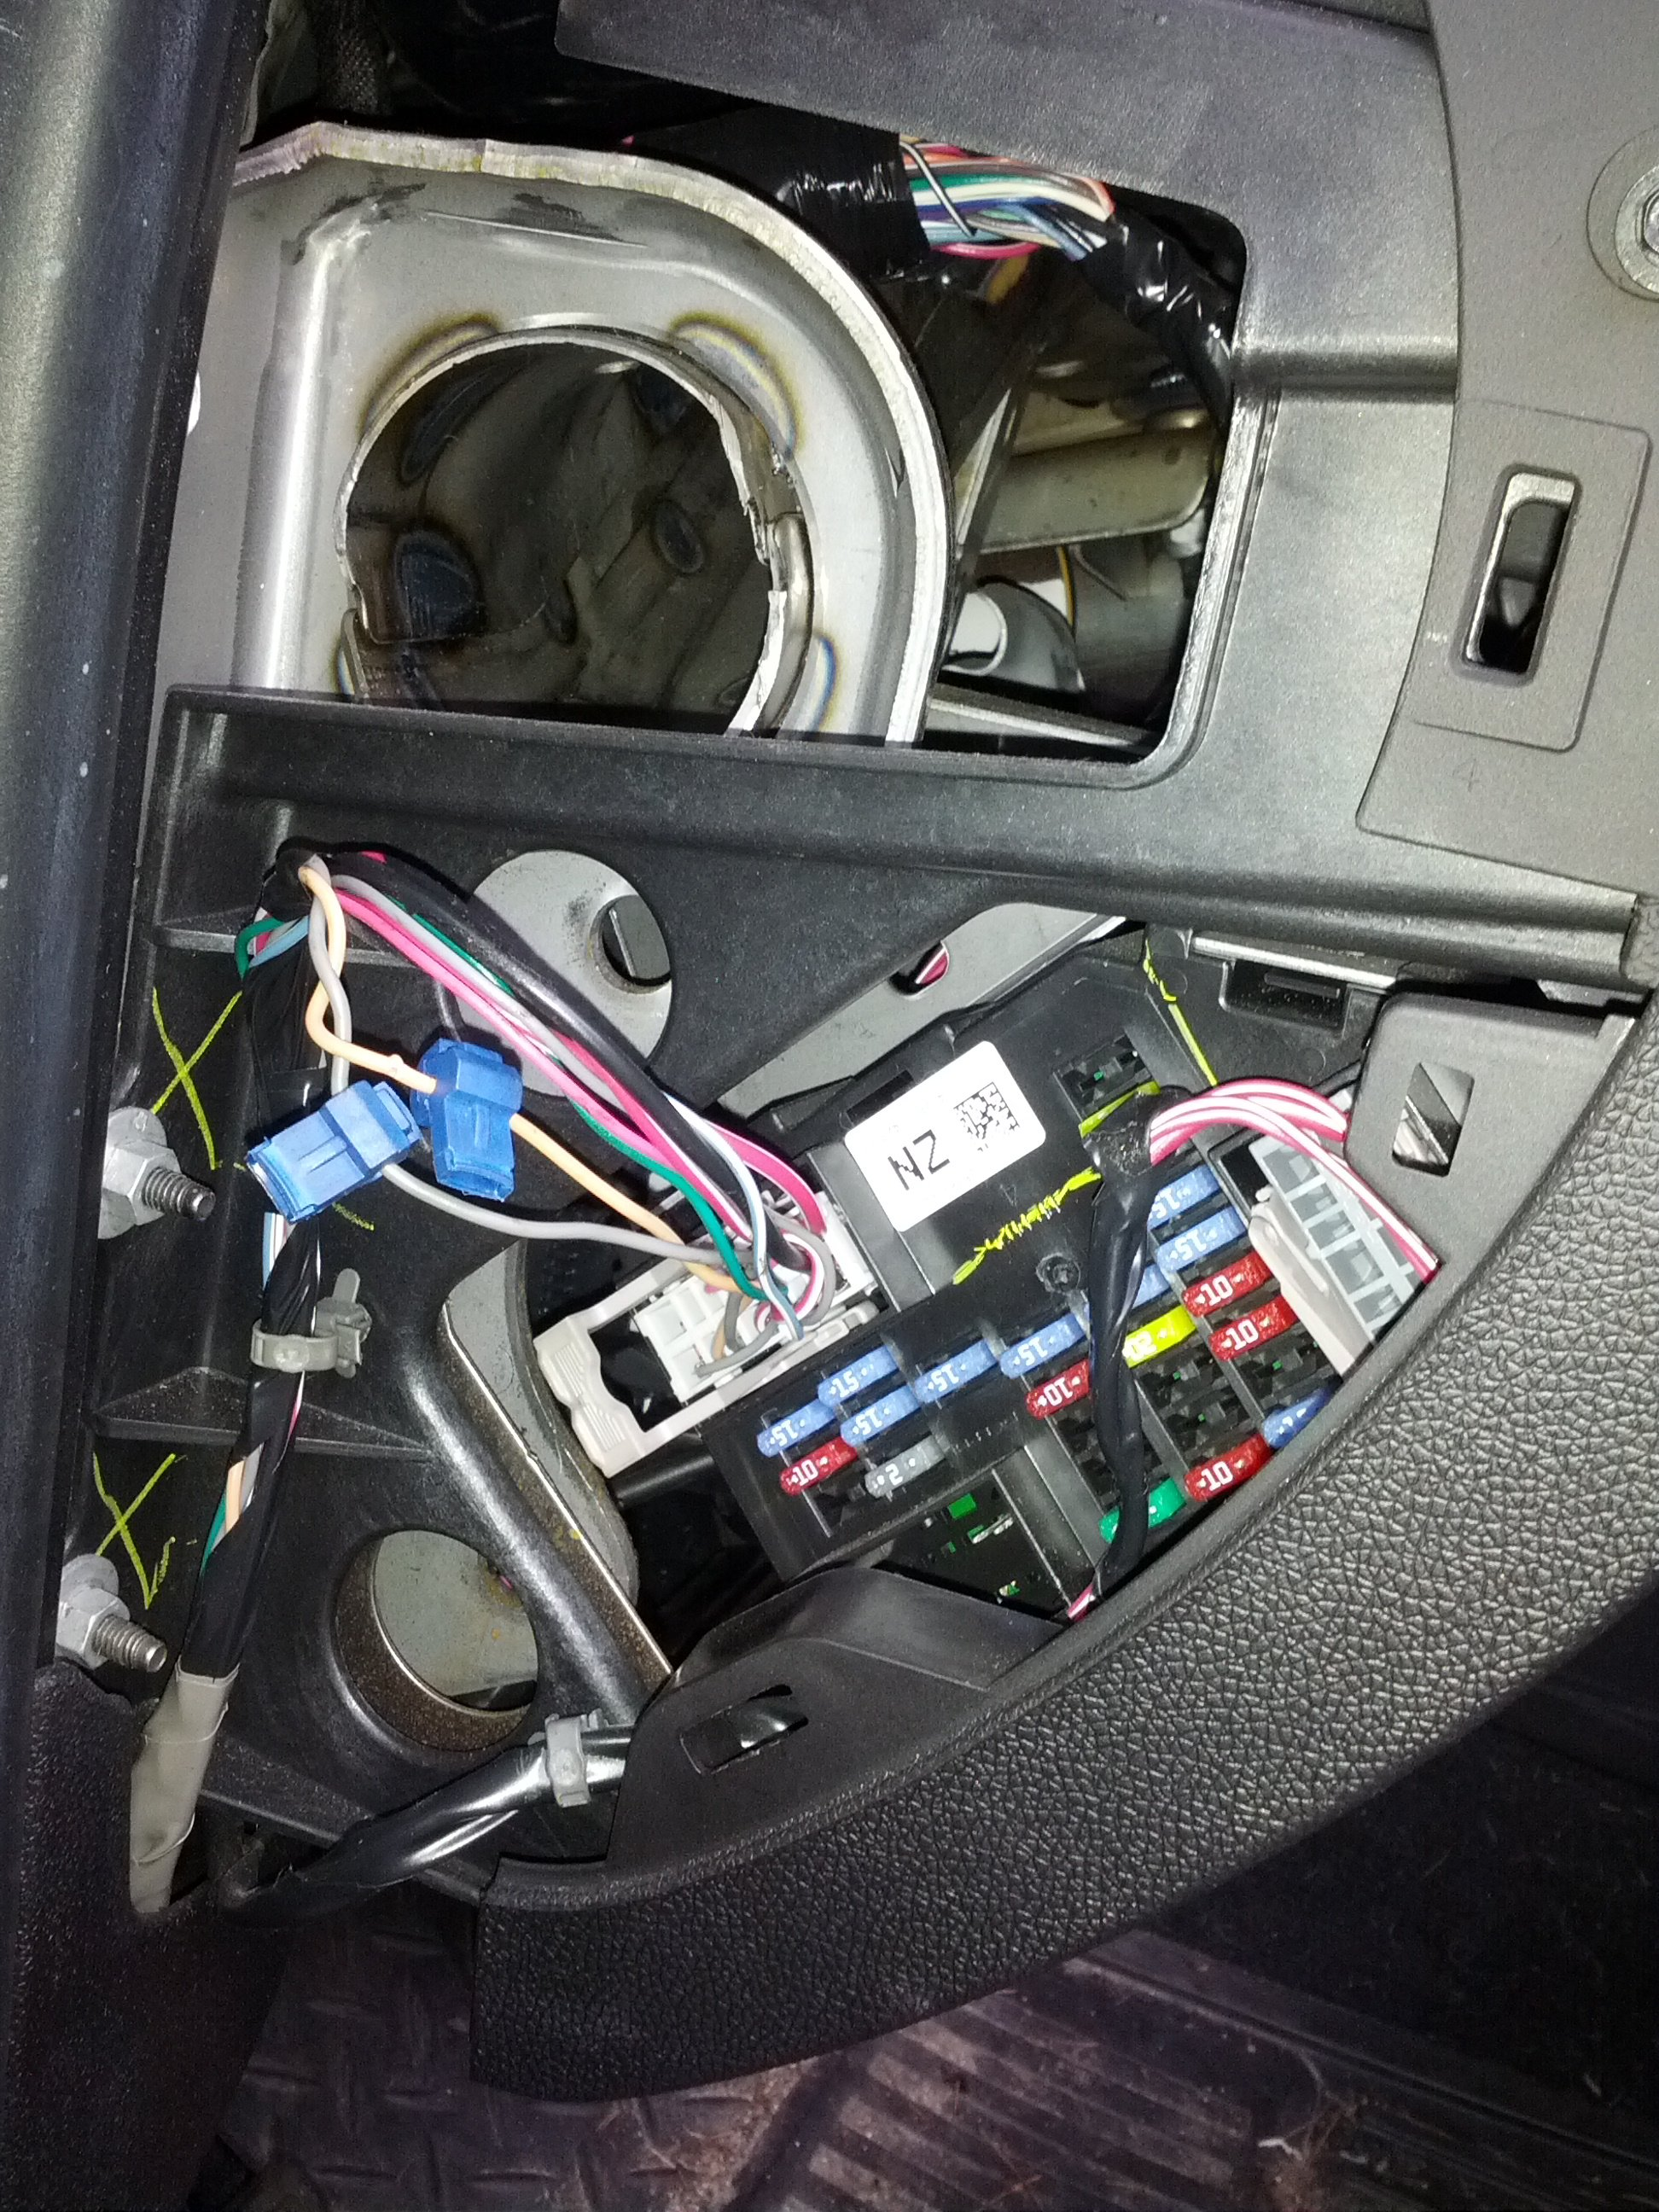 2011 honda pilot trailer wiring harness i'm looking for a wiring diagram for the fuse box on the ... 08 duramax trailer wiring harness